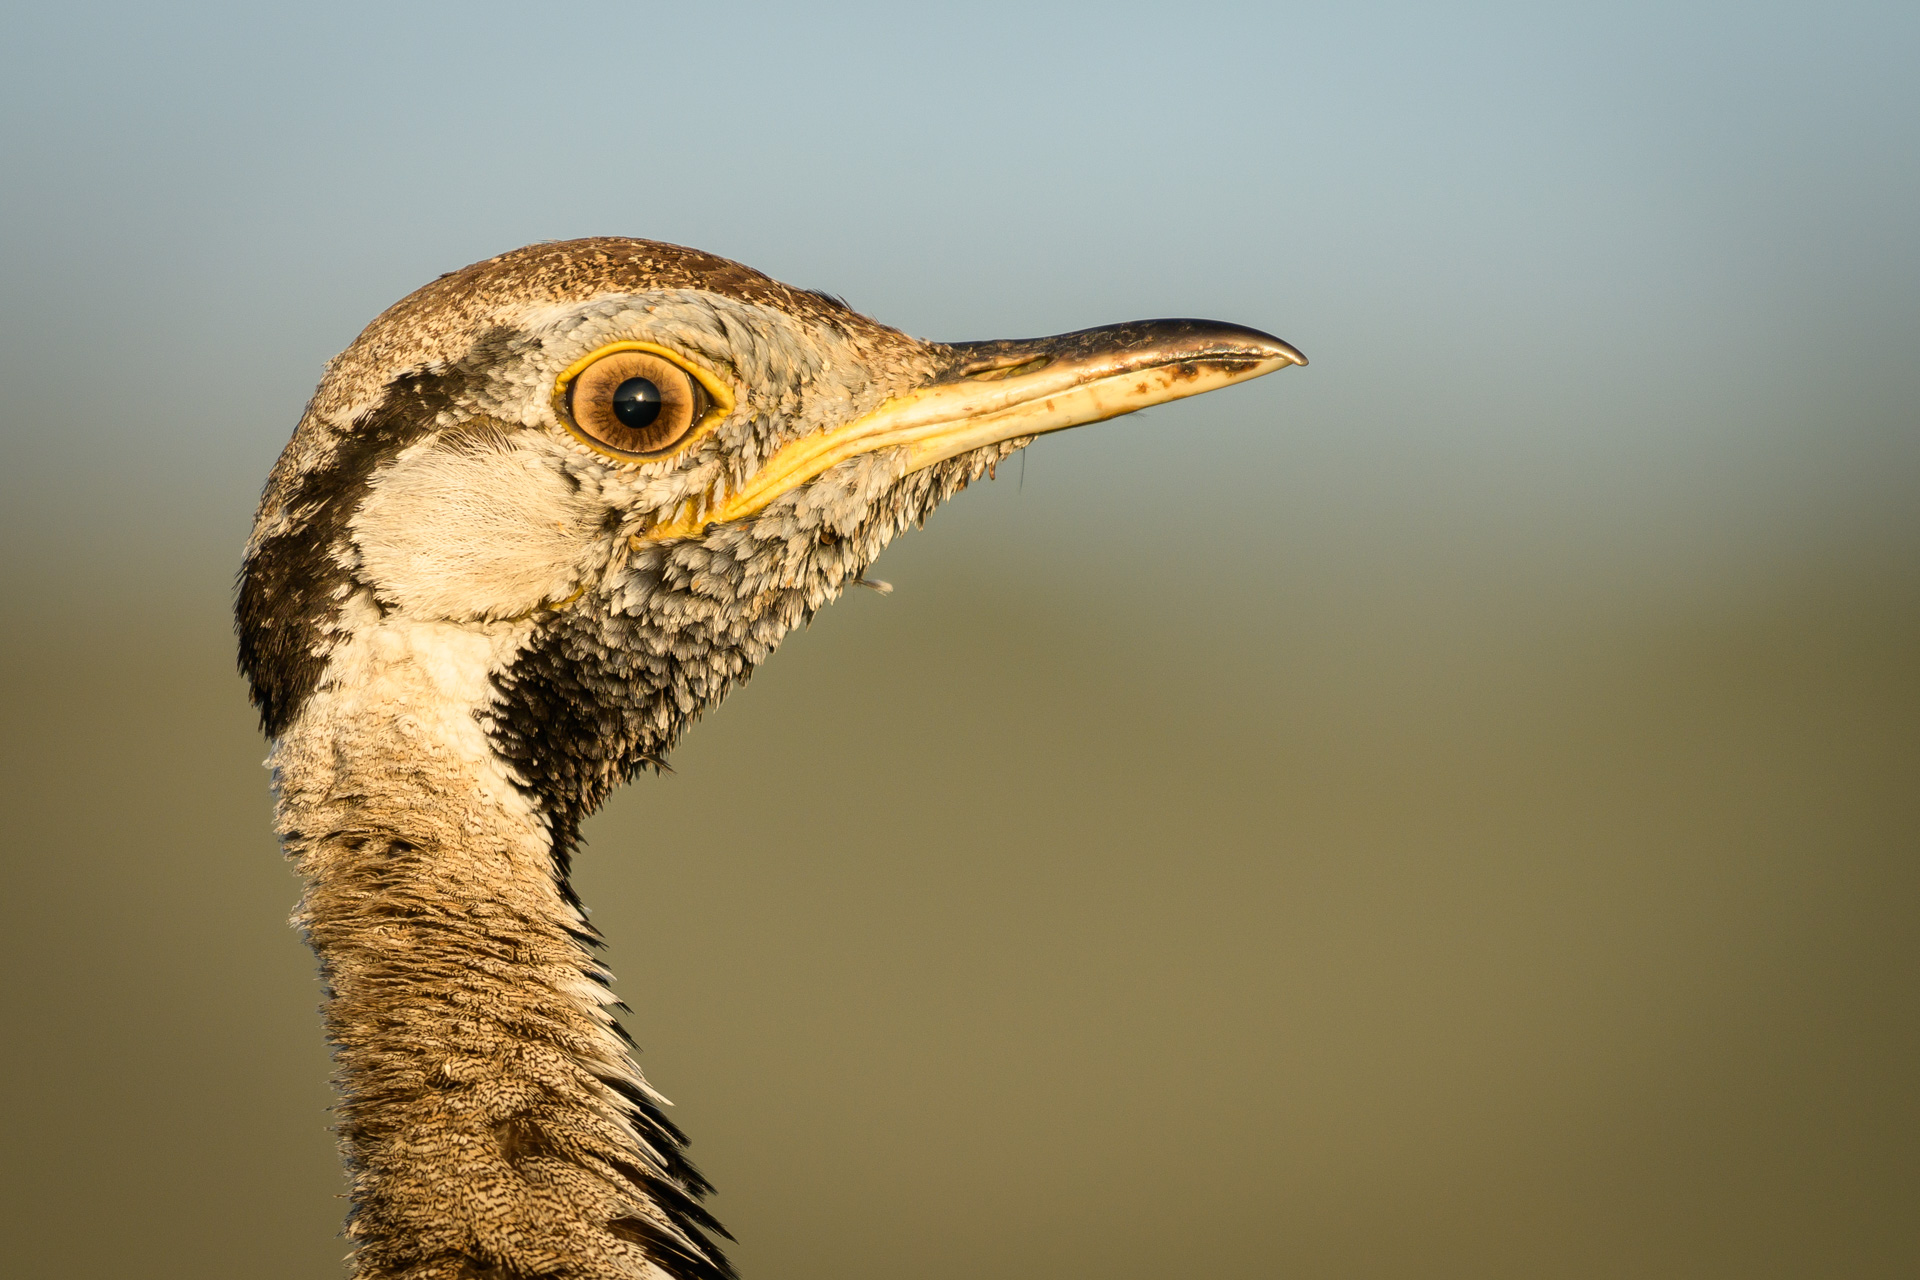 Bustard close up